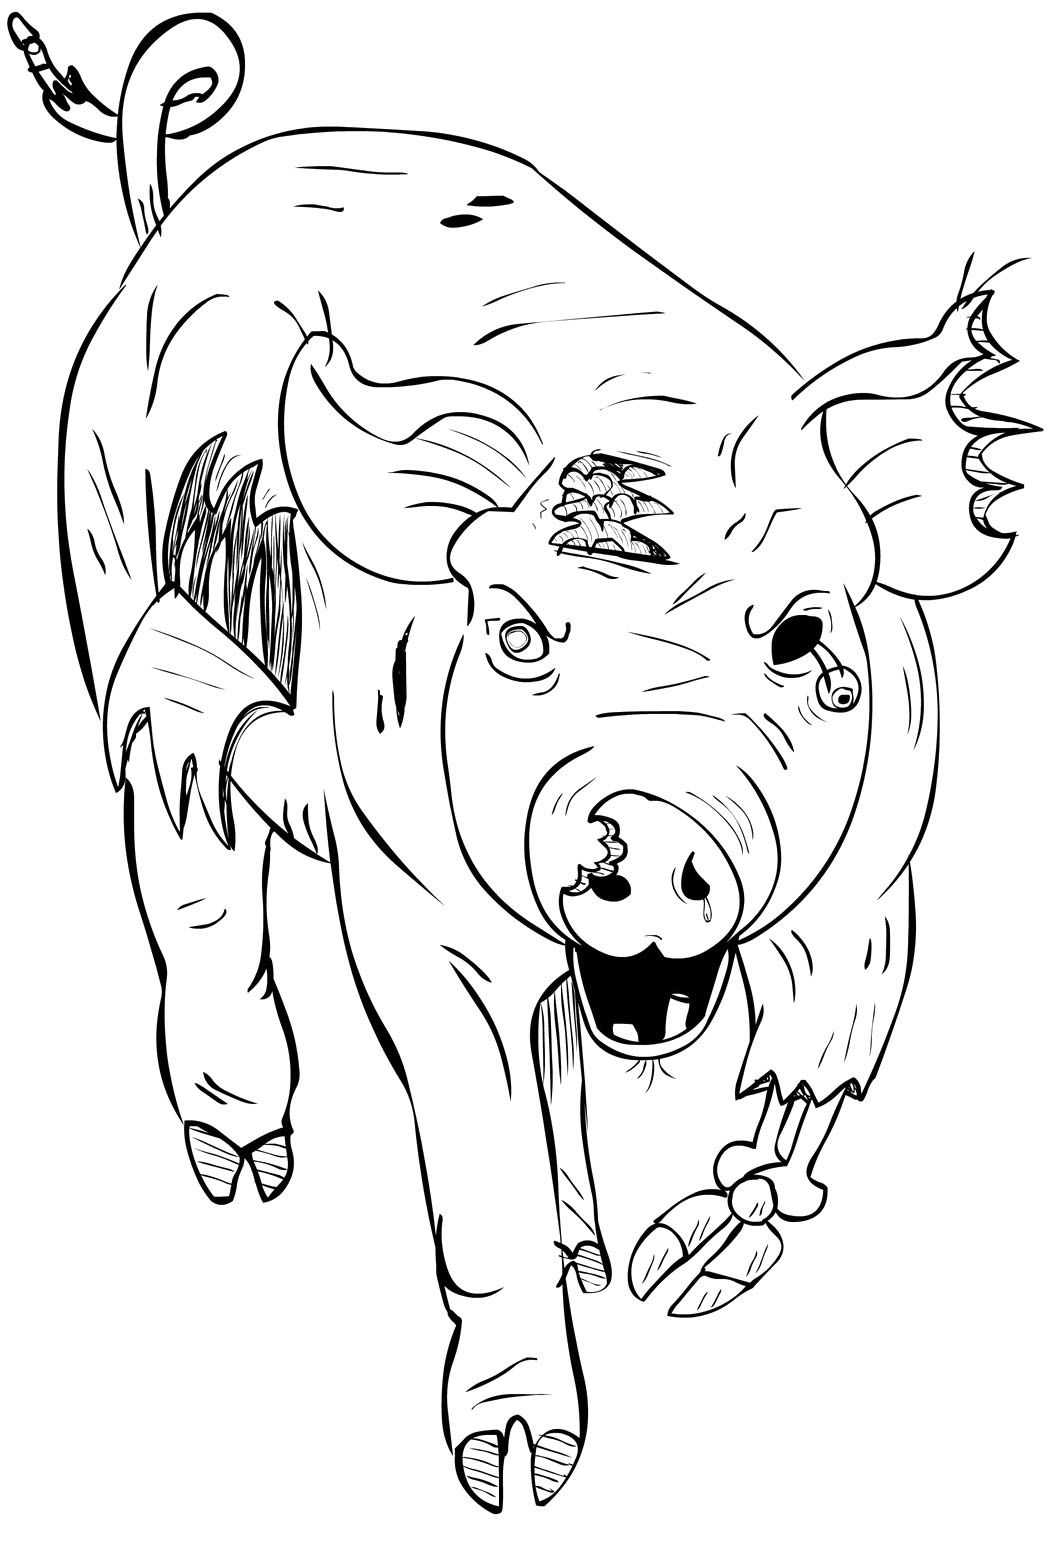 Pig Zombie Coloring Page | My coloring book | Pinterest | Coloring ...